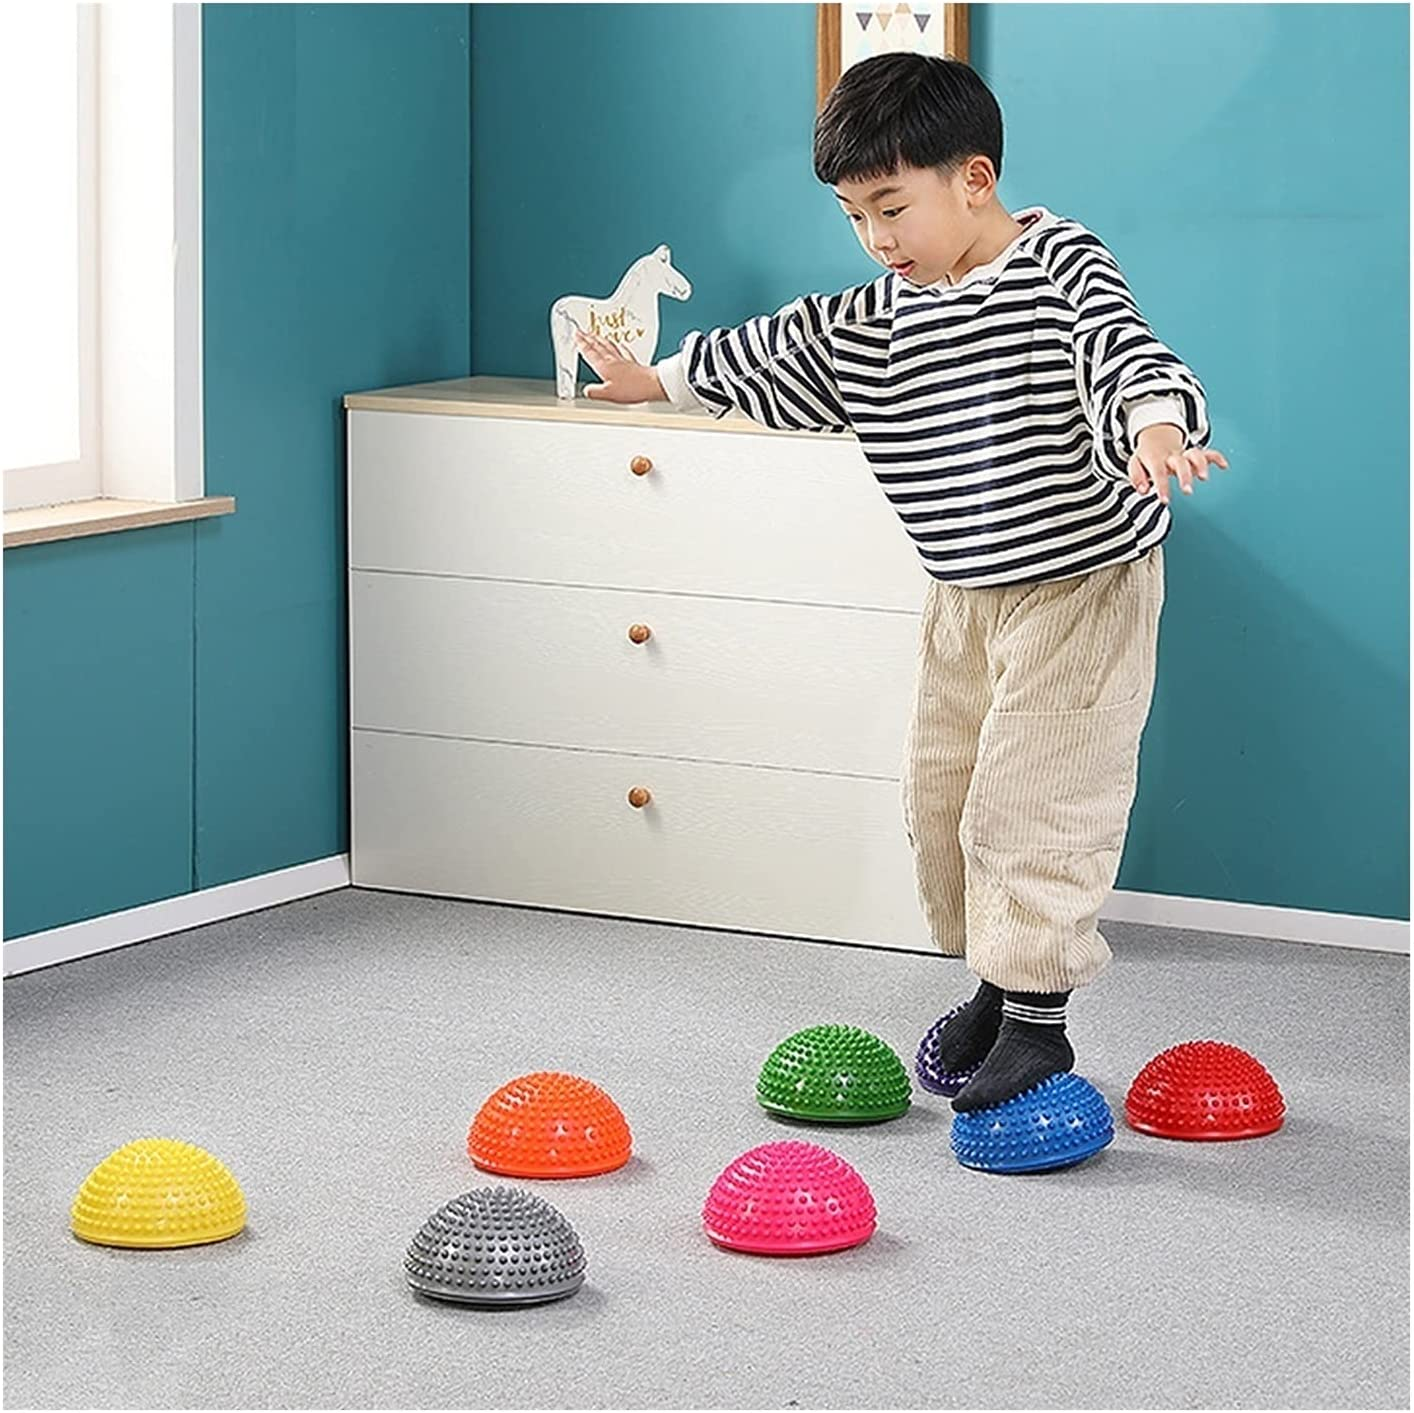 Balance Cheap mail order specialty store Stepping Stones for Kids Very popular Style Hedgehog Pods- H